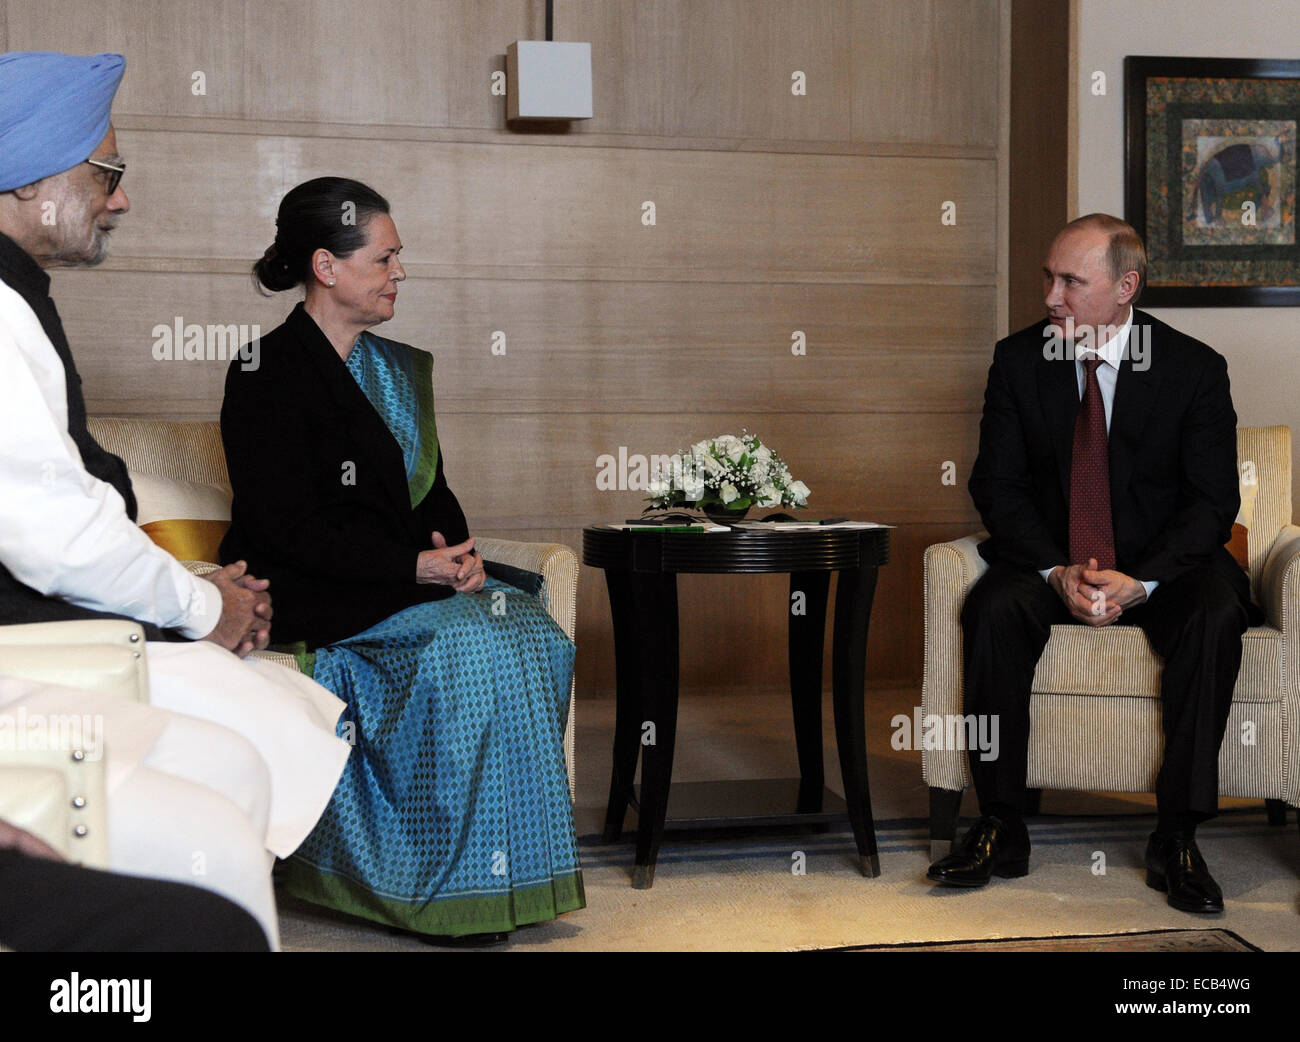 New Delhi, India. 11th Dec, 2014. Russia's president Vladimir Putin (R) and Indian National Congress president - Stock Image